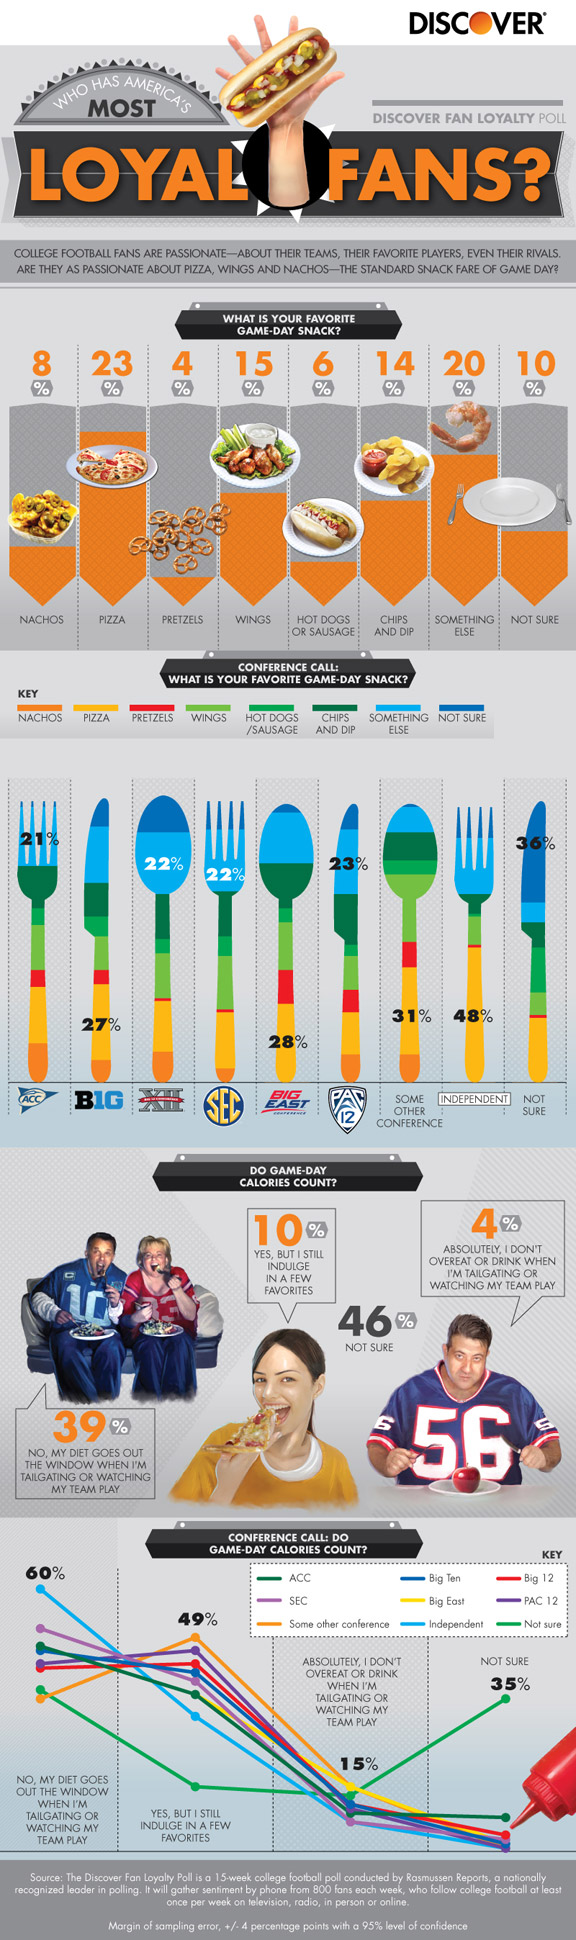 Discover Fan Loyalty Poll infographic: Food and college football fans